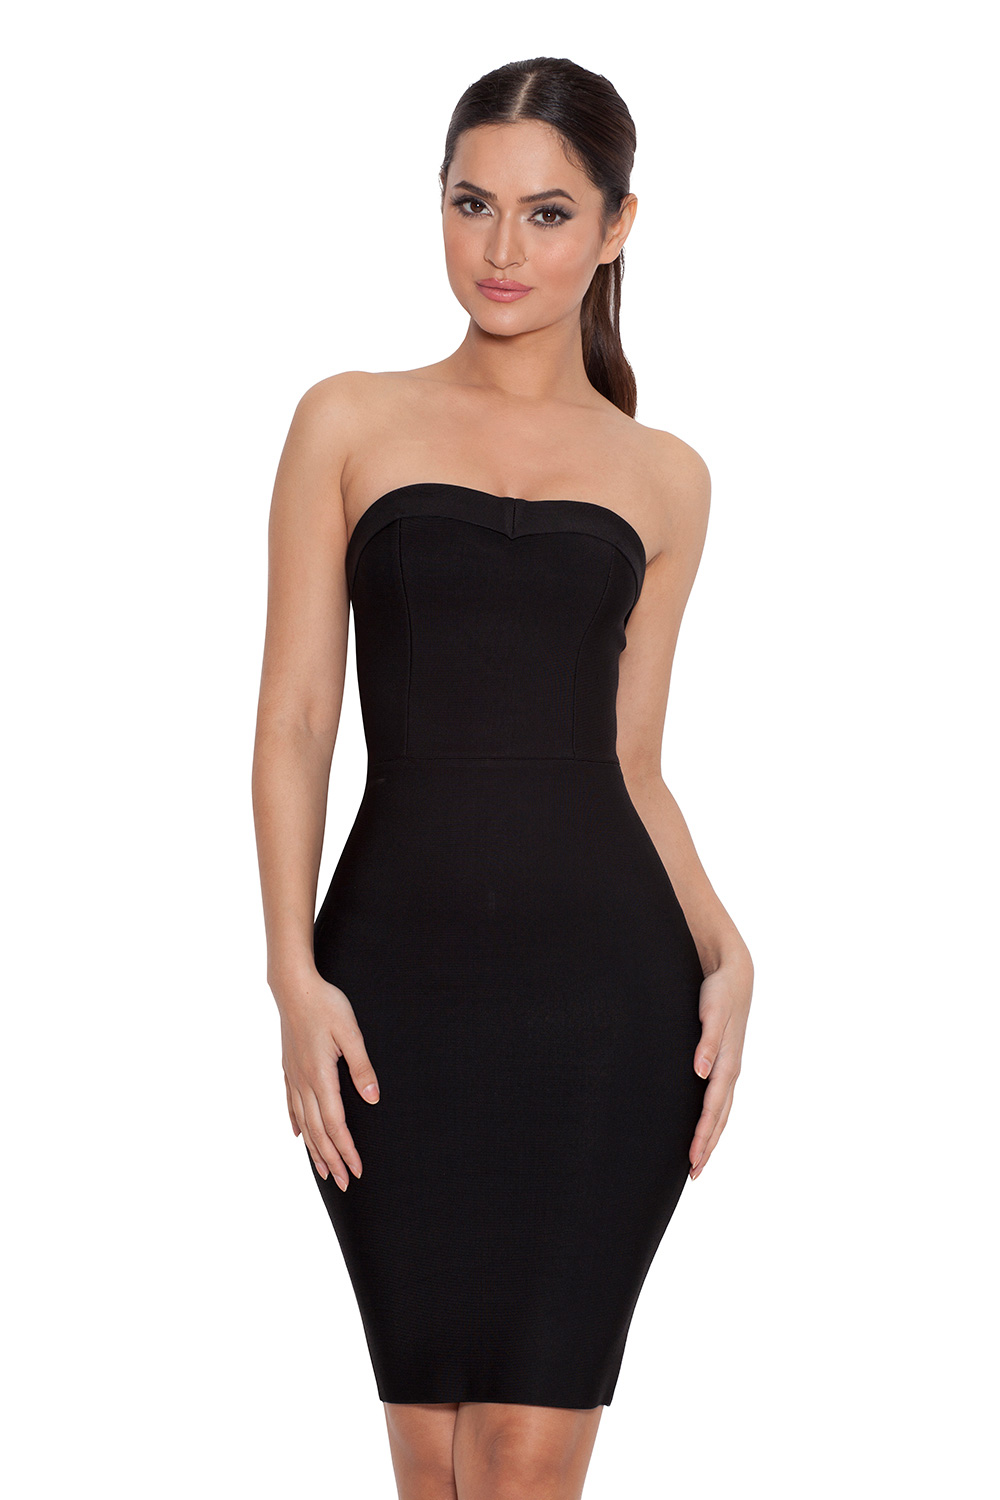 Clothing  Bandage Dresses  u0026#39;Vannau0026#39; Black Strapless Bandage Mini Dress